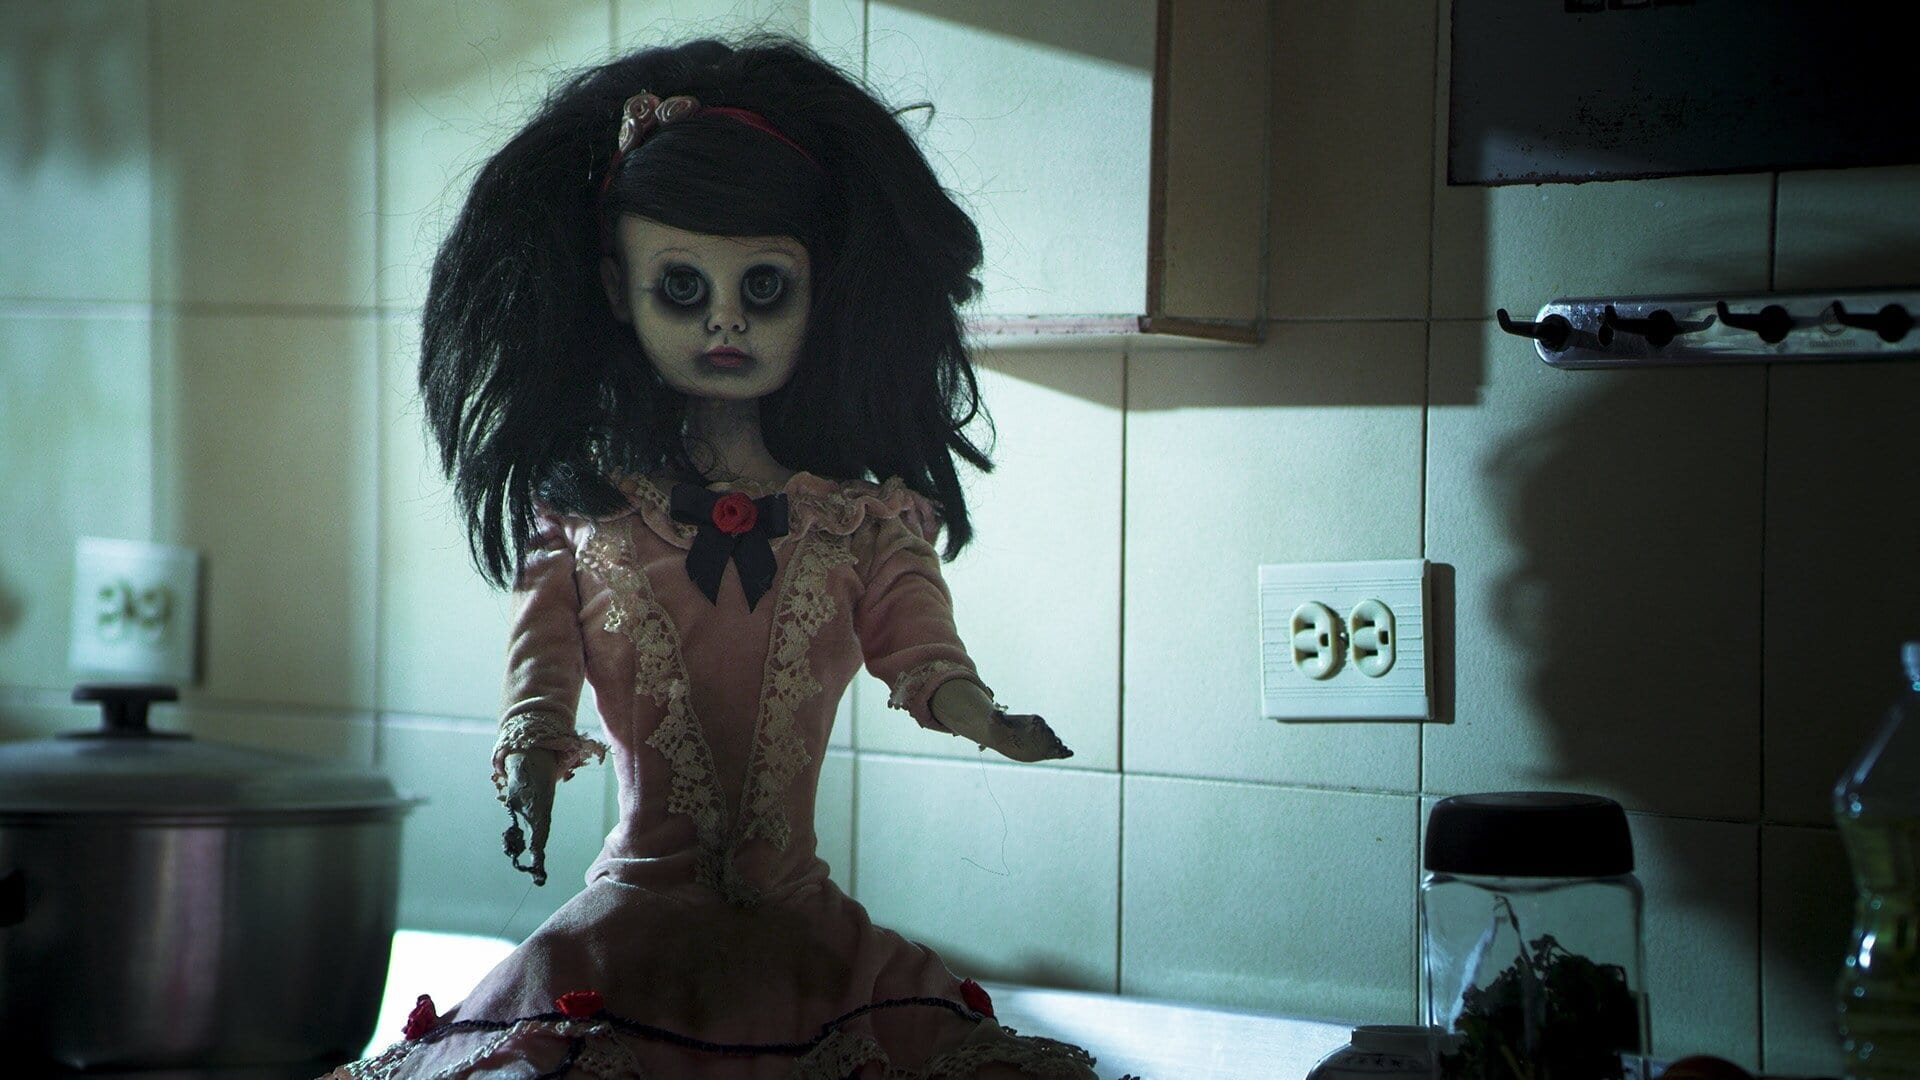 The Cursed Doll